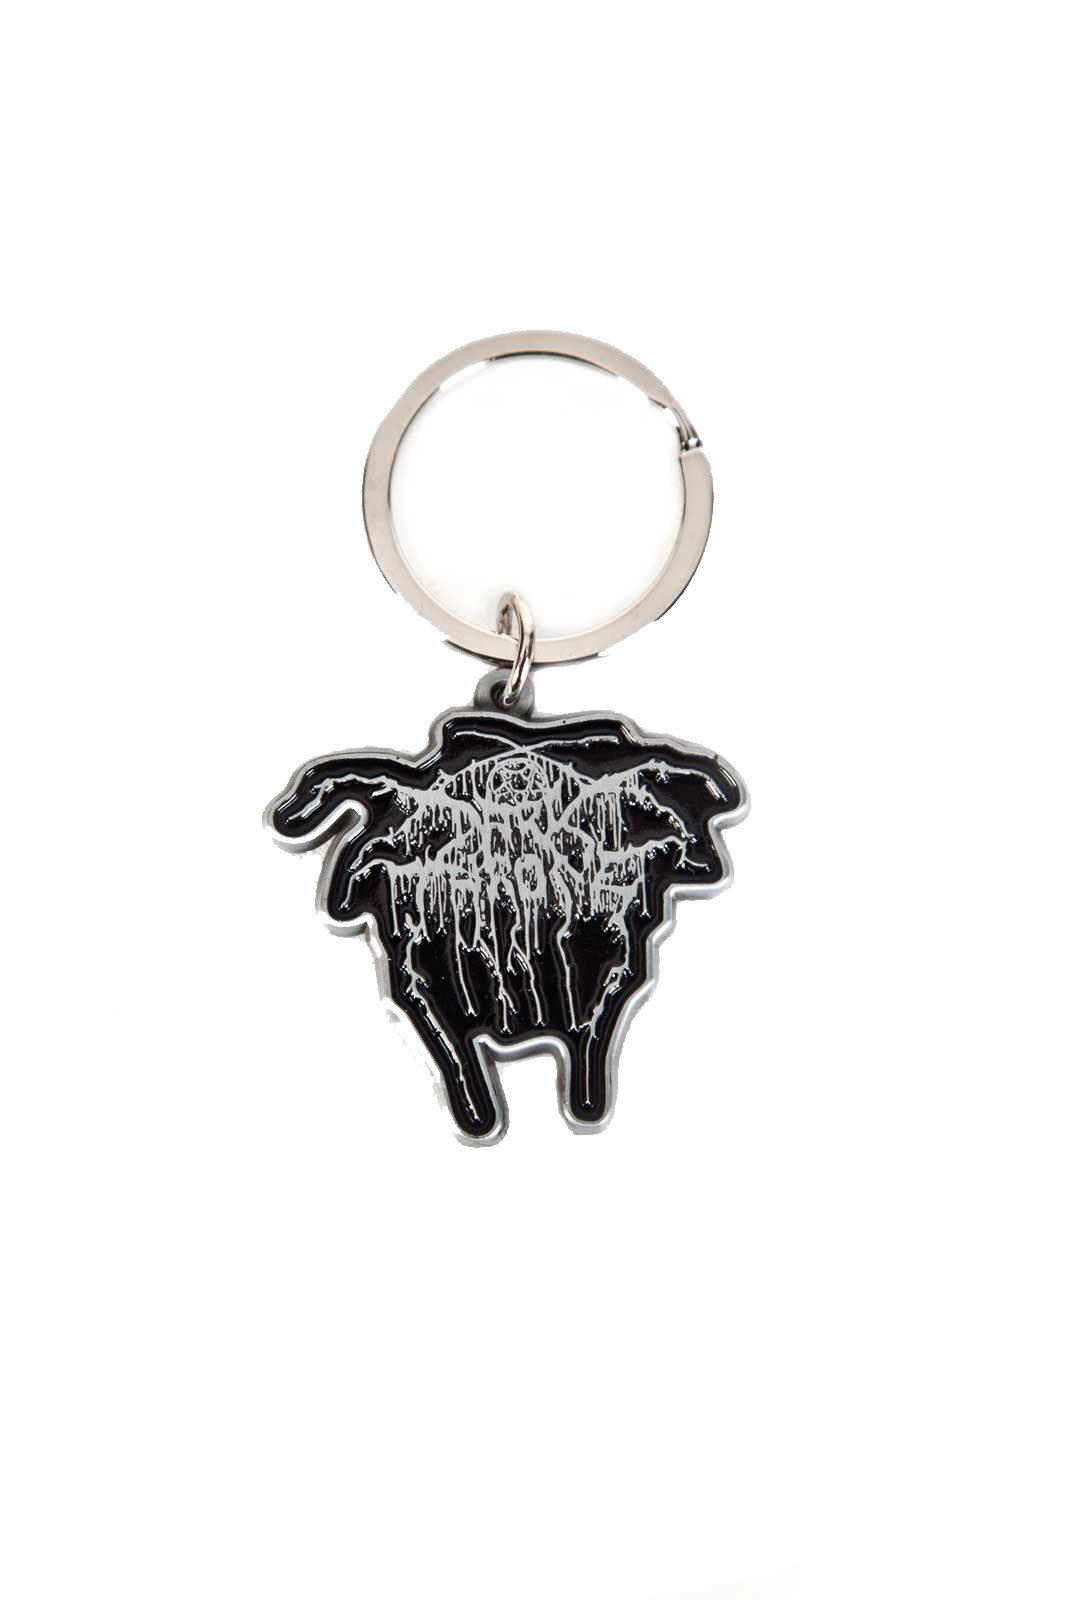 official merchandise darkthrone keyring